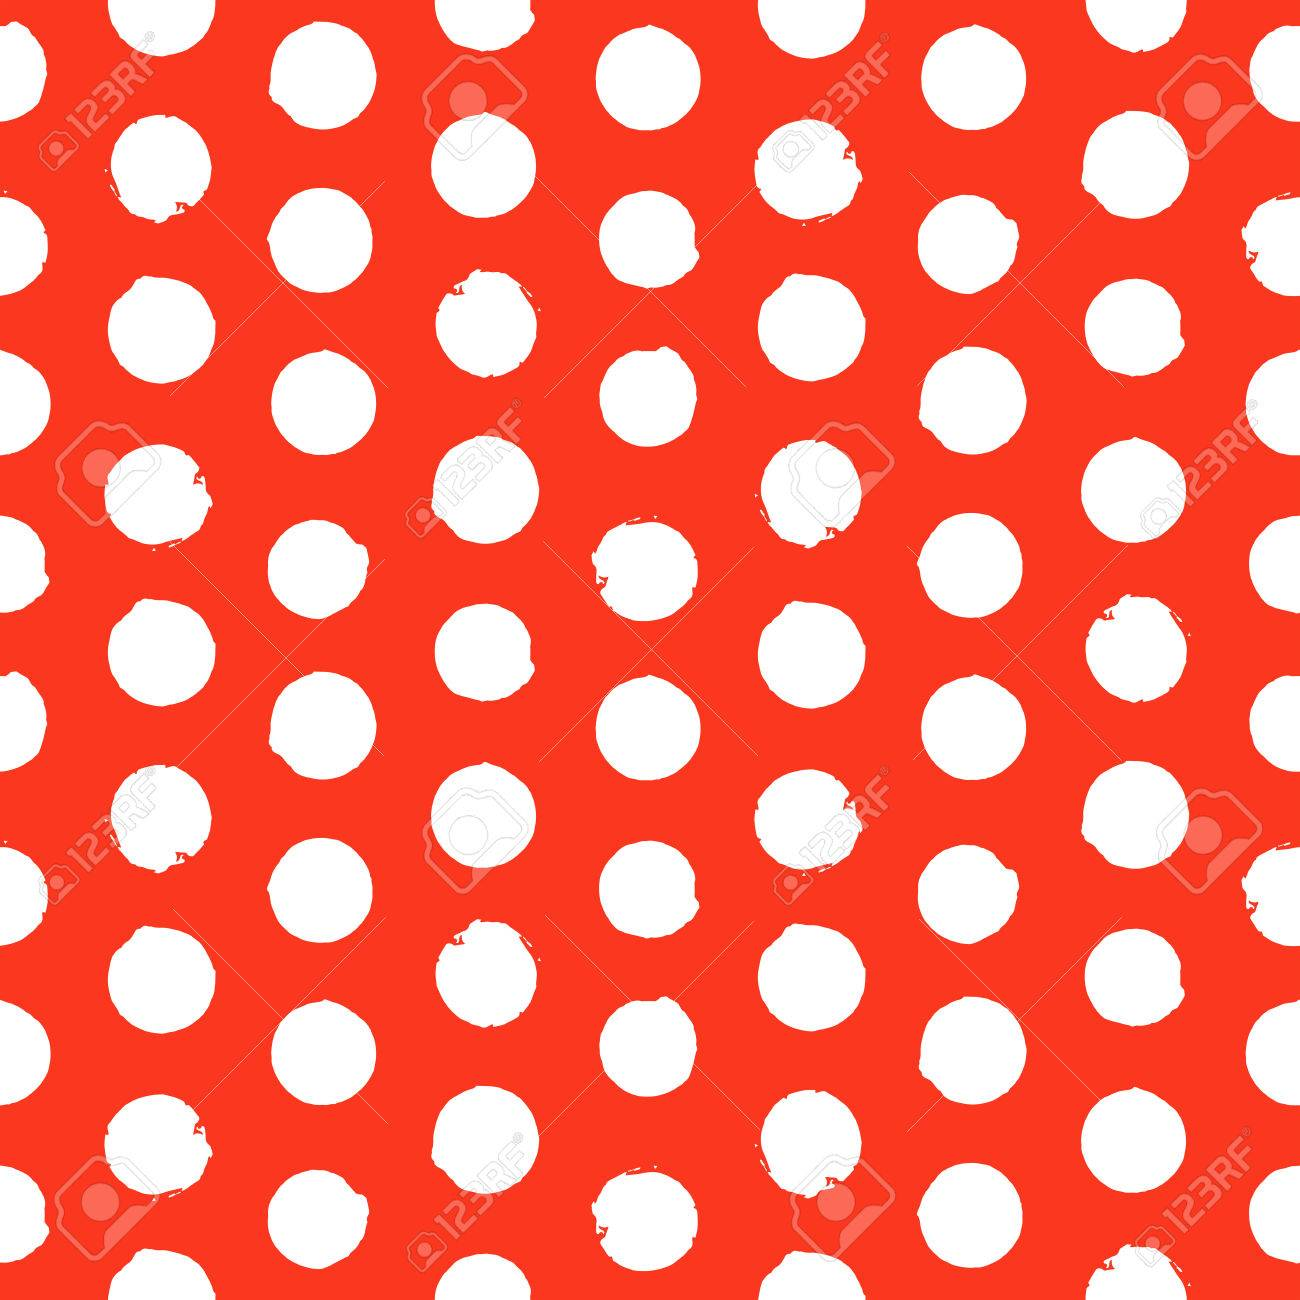 vector seamless hand drawn polka dot pattern painted texture rh 123rf com vector dot pattern free vector dot pattern gradient